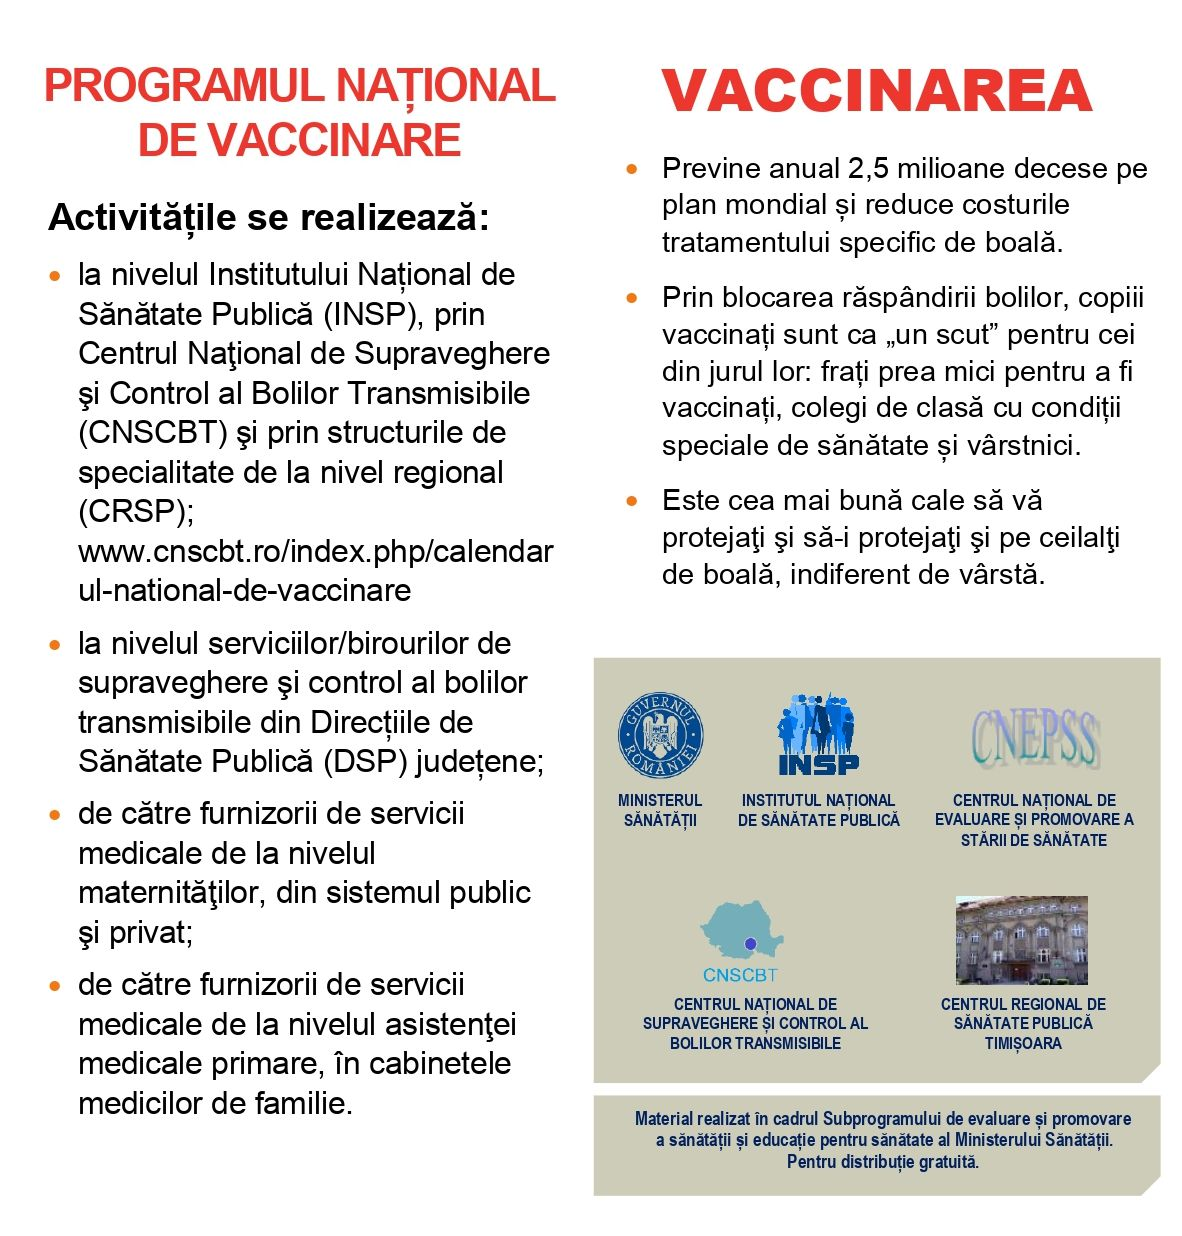 Program-national-de-vaccinare.jpg